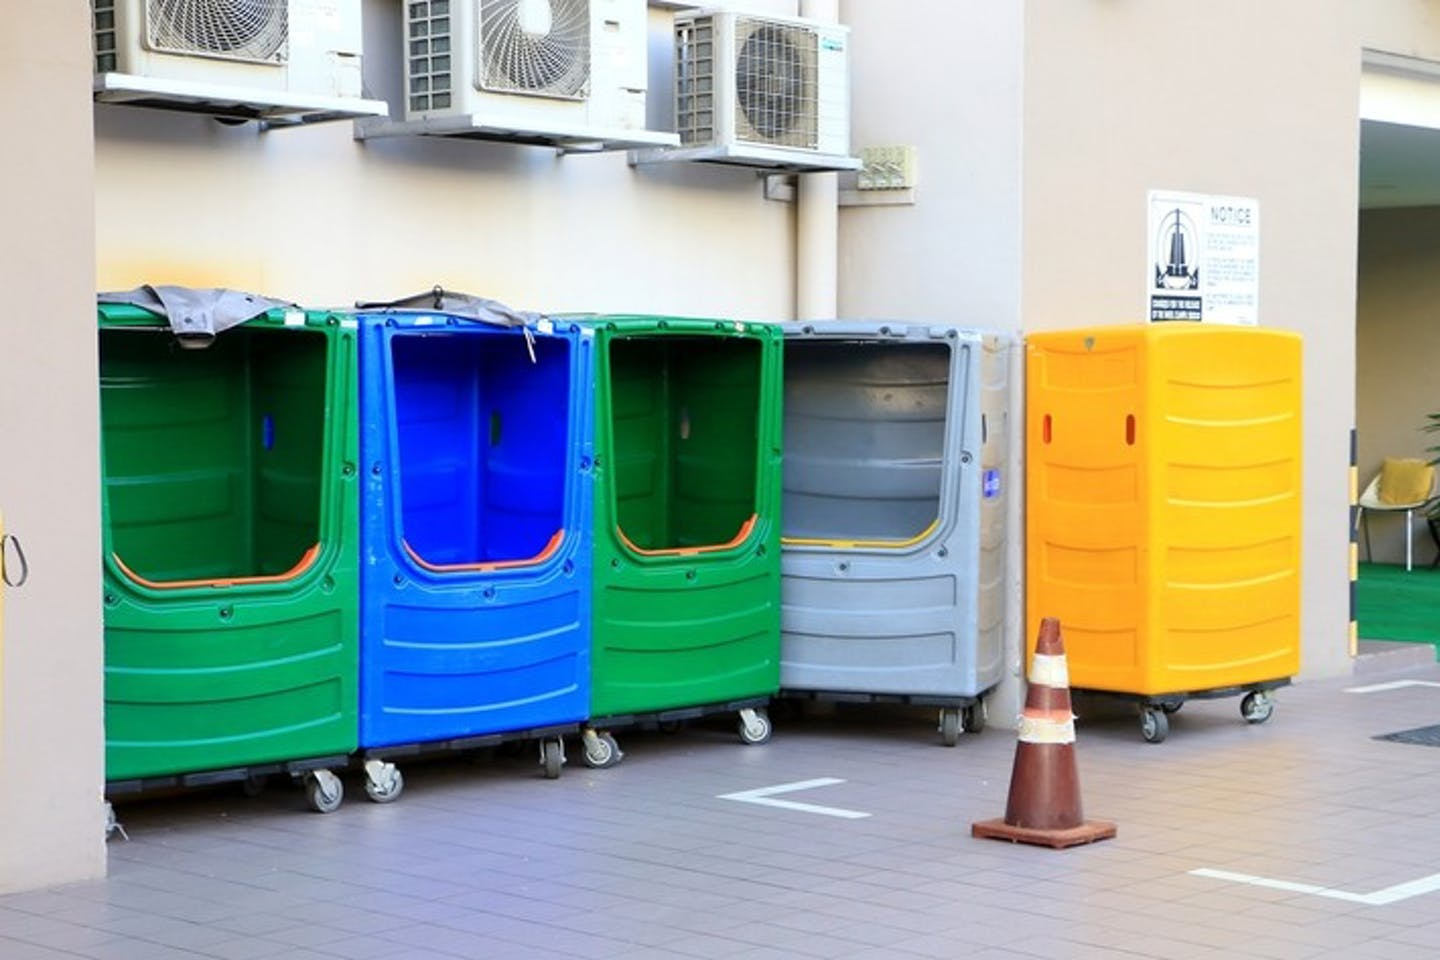 Recycle and scrap bins in Singapore